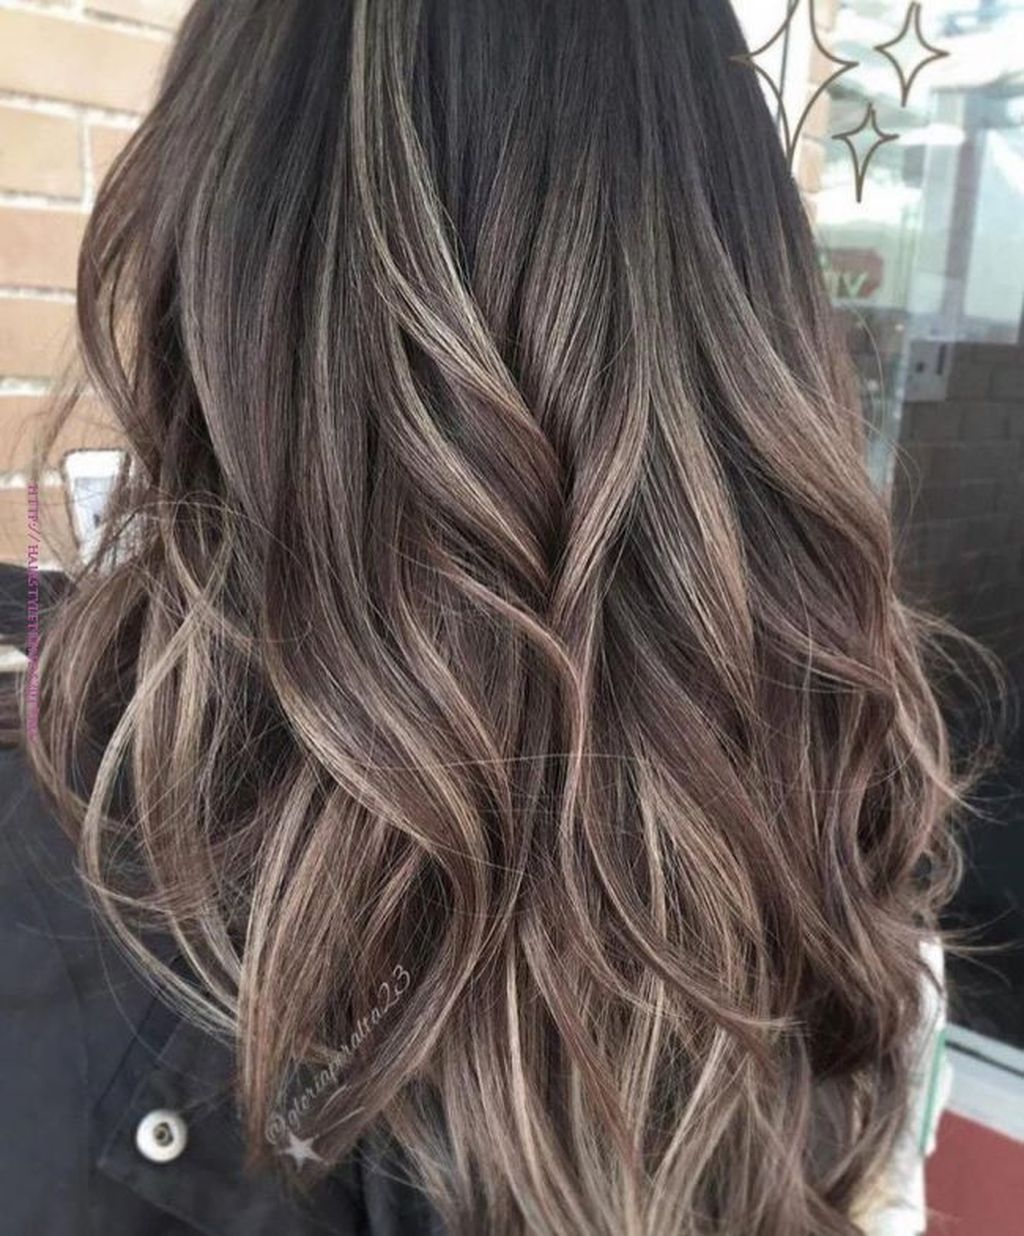 20 Awesome Balayage Hair Color Ideas For 2019 Spring Hair Color Balayage Hair Brunette Hair Color